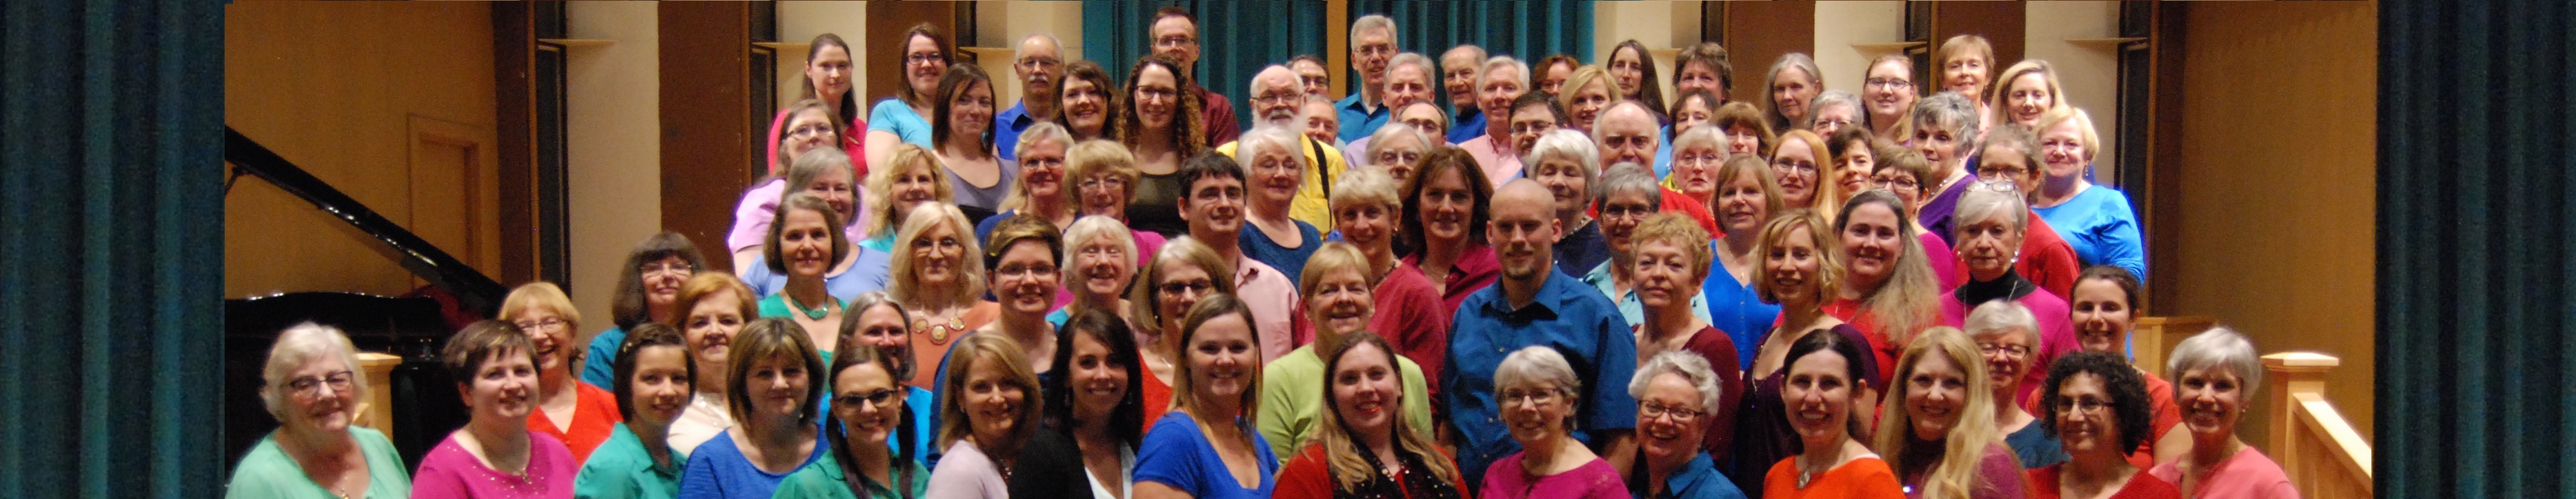 Guelph Community Singers